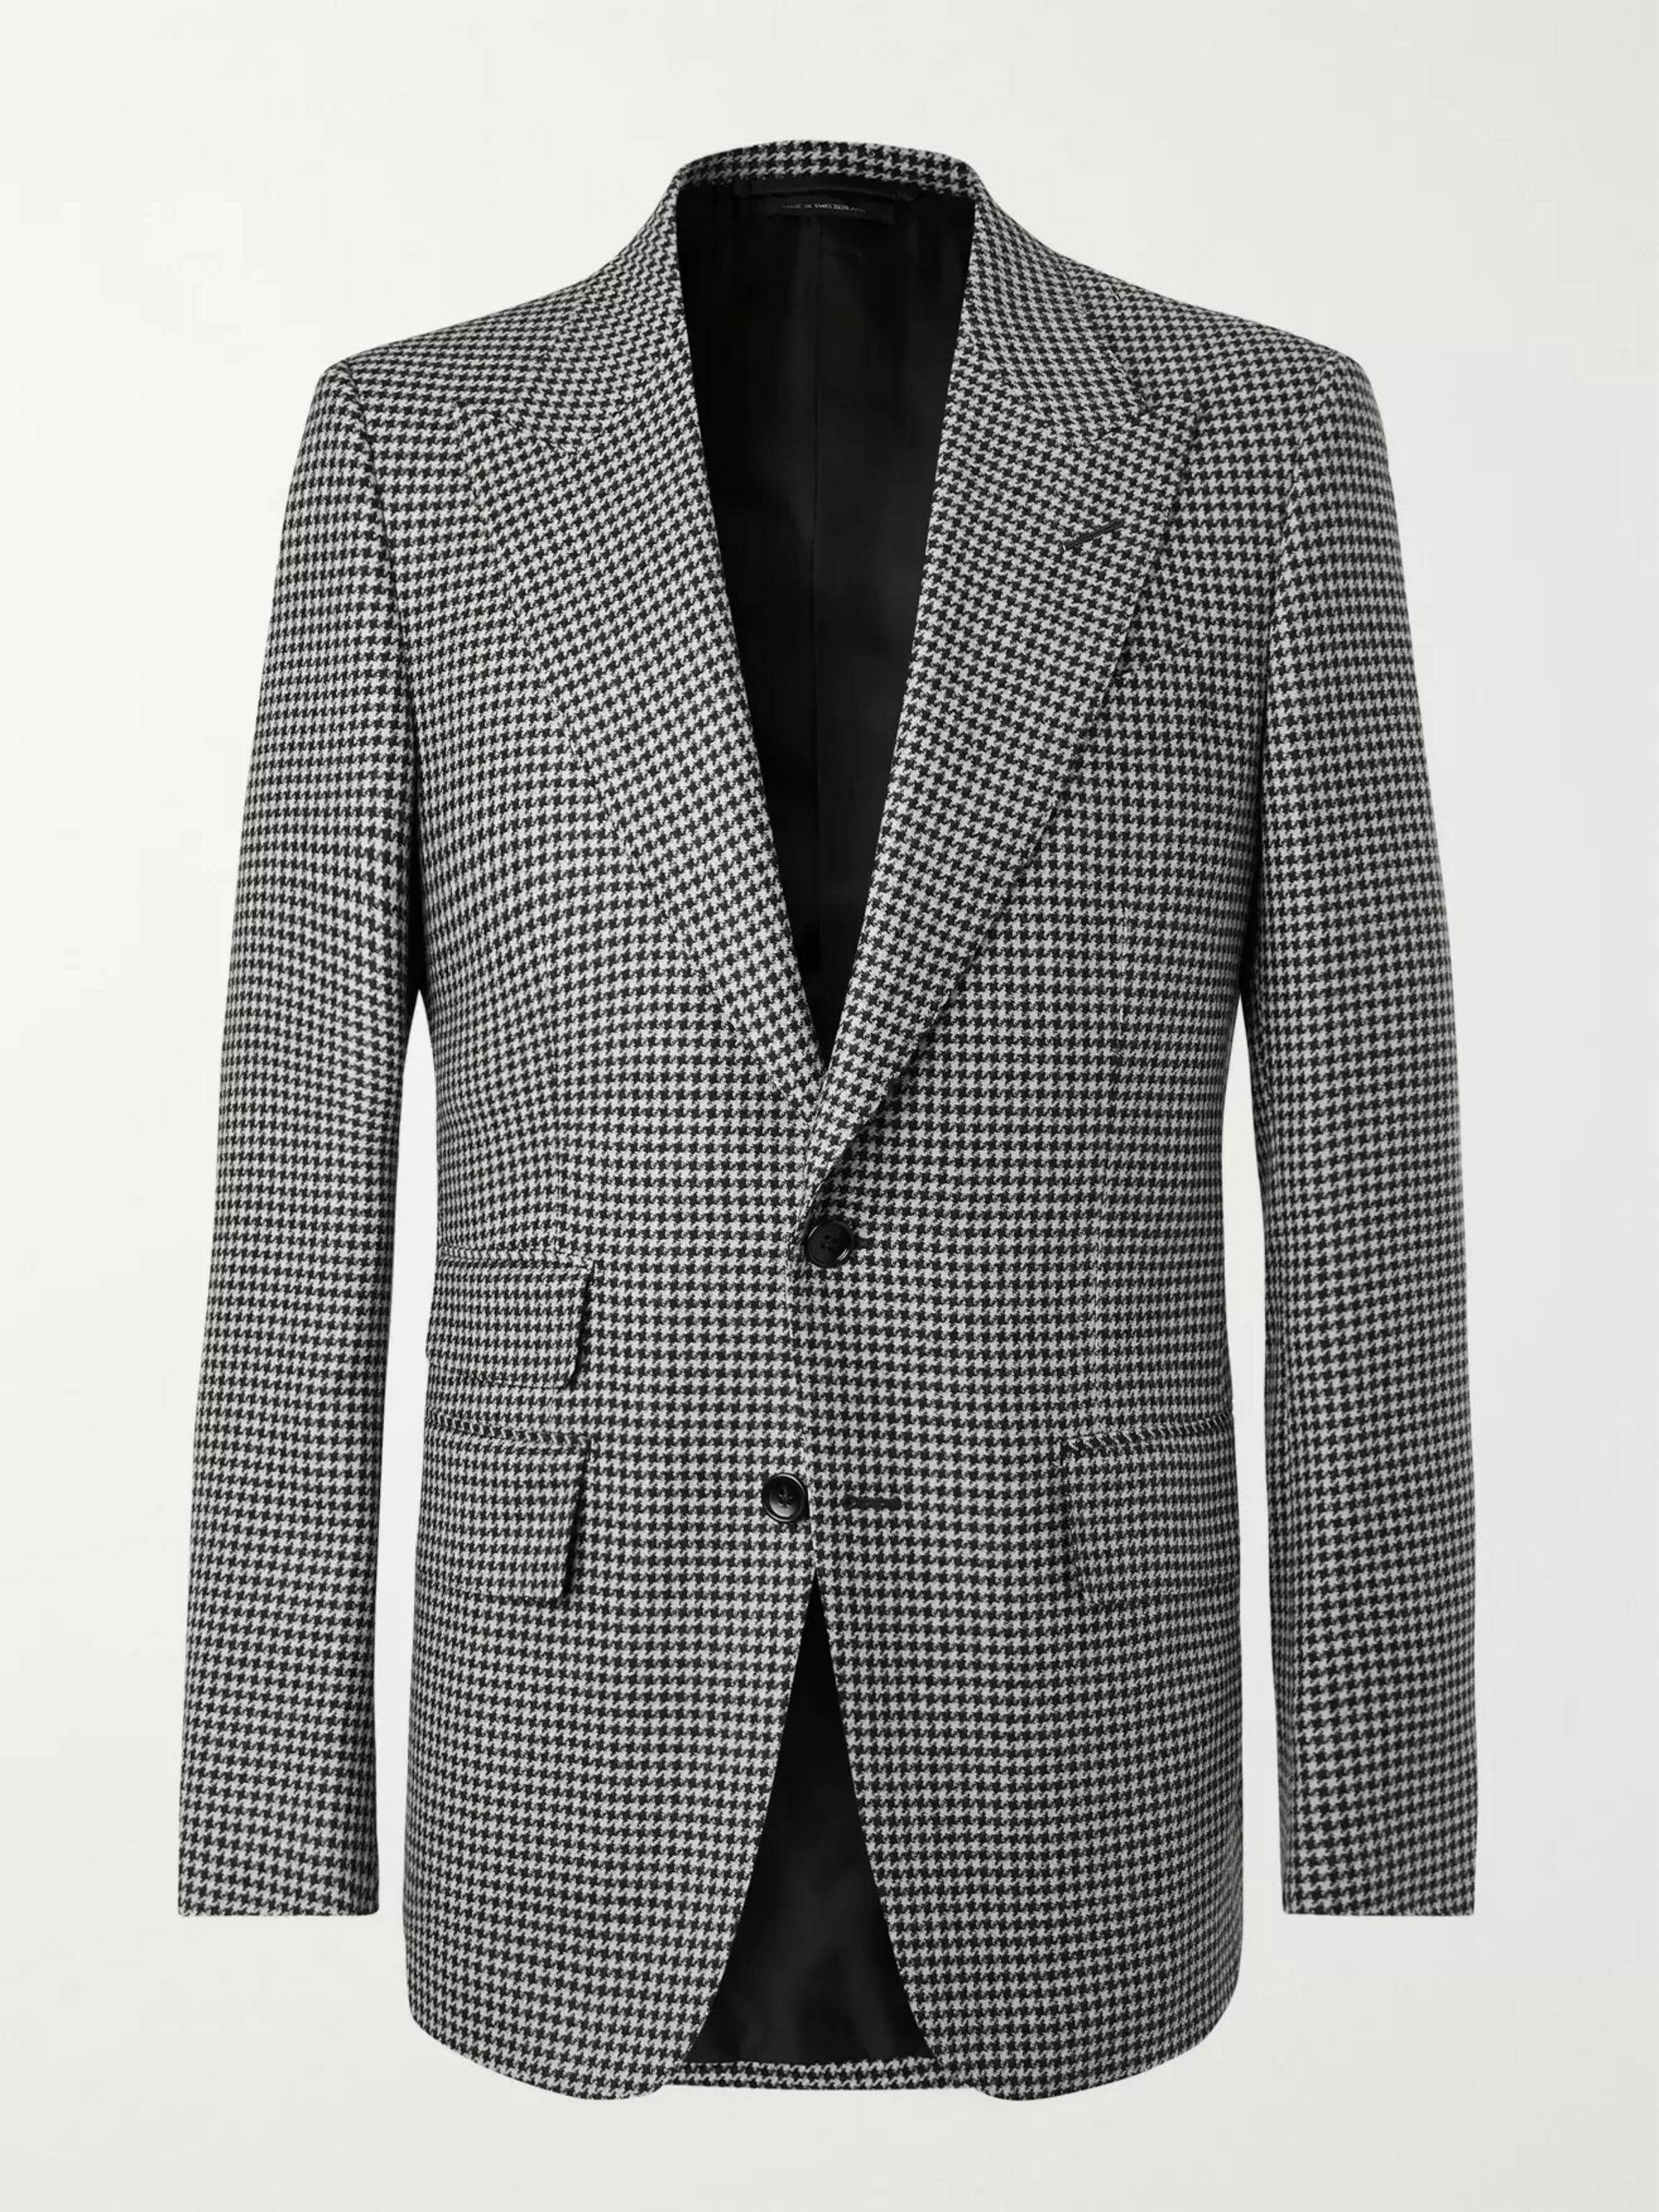 TOM FORD Black Shelton Slim-Fit Houndstooth Wool Blazer